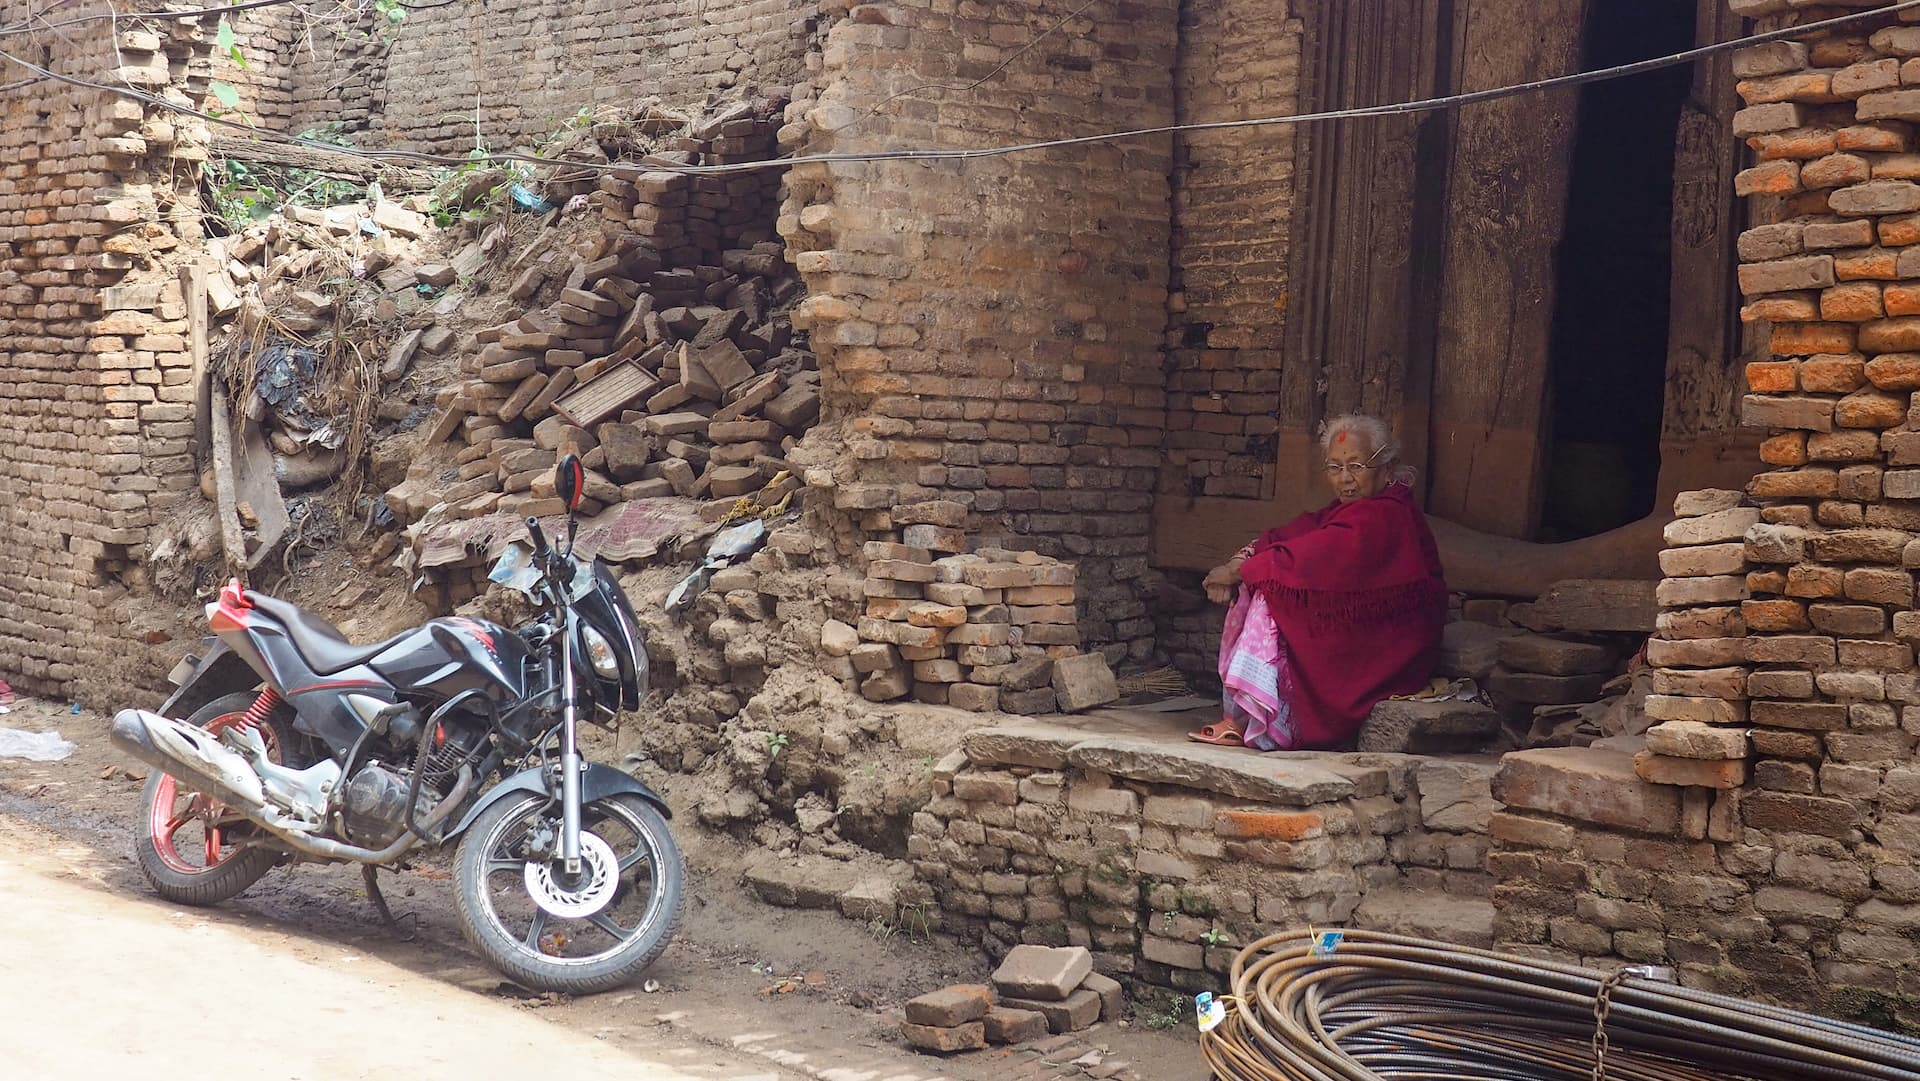 A woman in red clothing sits in a doorstep next to rubble and a motorcycle